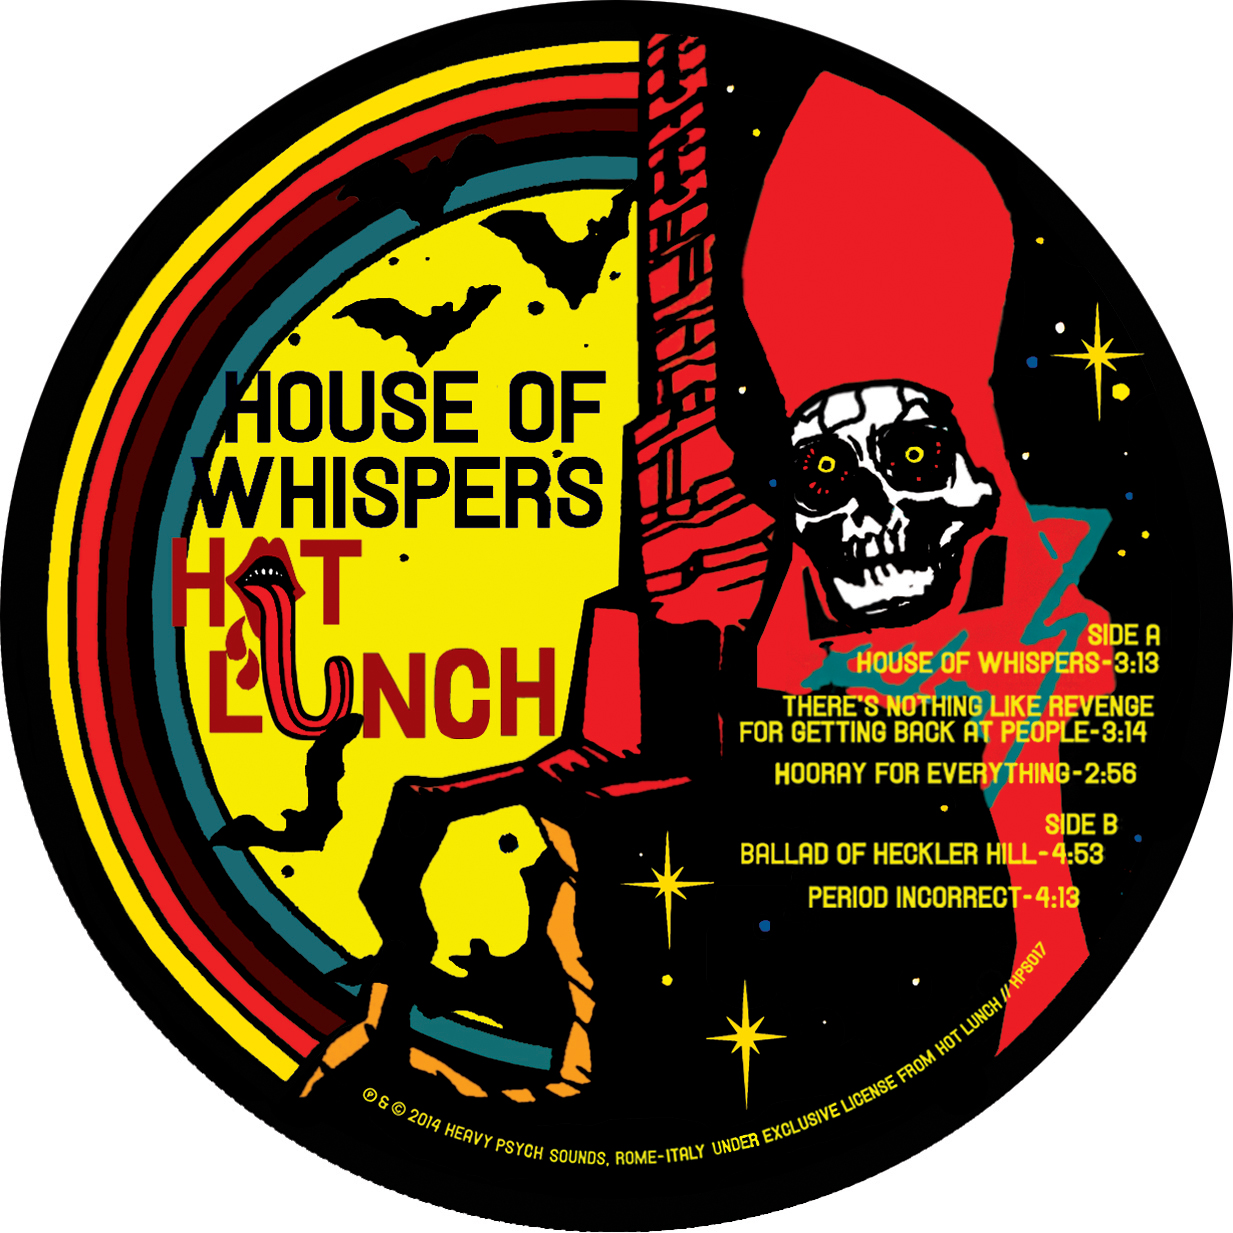 STARCADE DESIGNS FOR HOT LUNCH / DESIGN, ILLUSTRATION, VINYL LABEL / ©HOT LUNCH     .